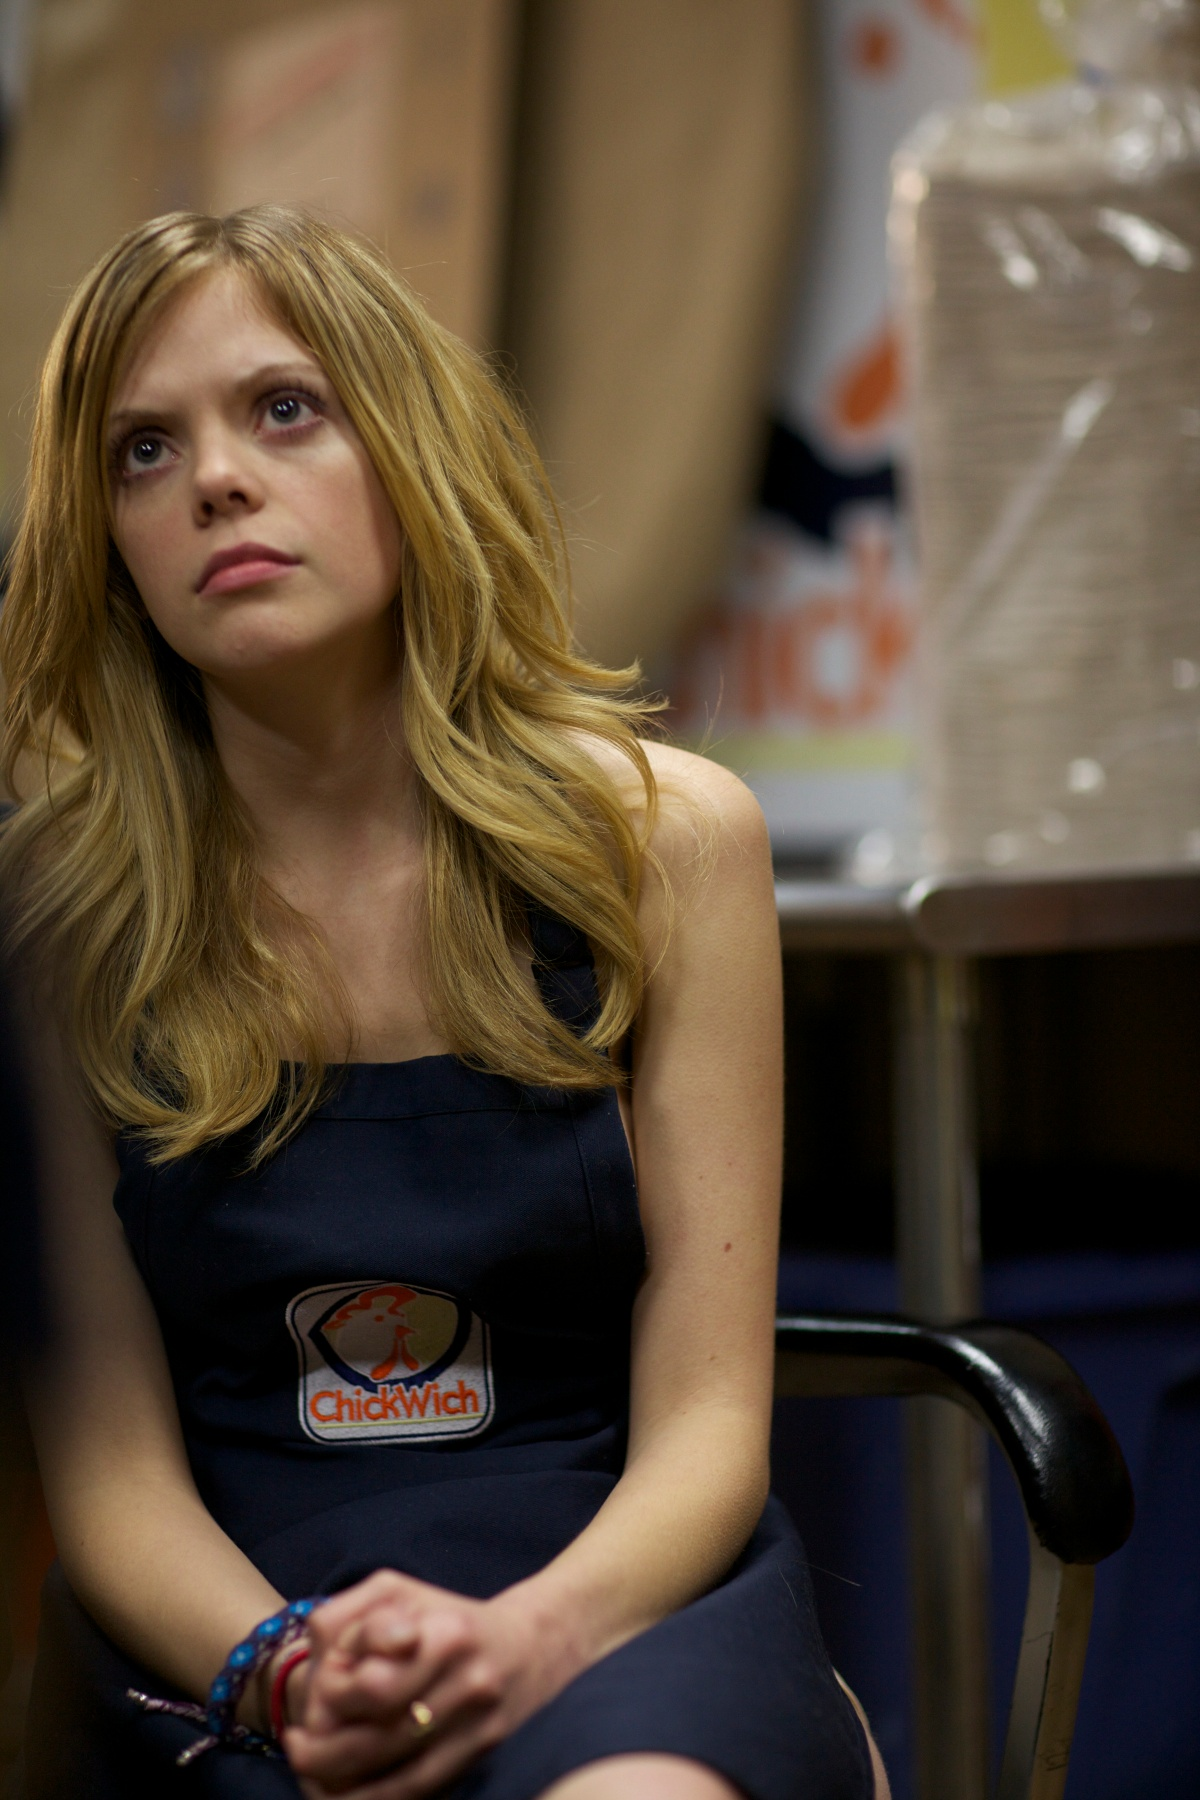 http://indieethos.files.wordpress.com/2012/09/dreama-walker-complies-in-compliance-a-magnolia-pictures-release-photo-courtesy-of-magnolia-pictures.jpg?w=1200